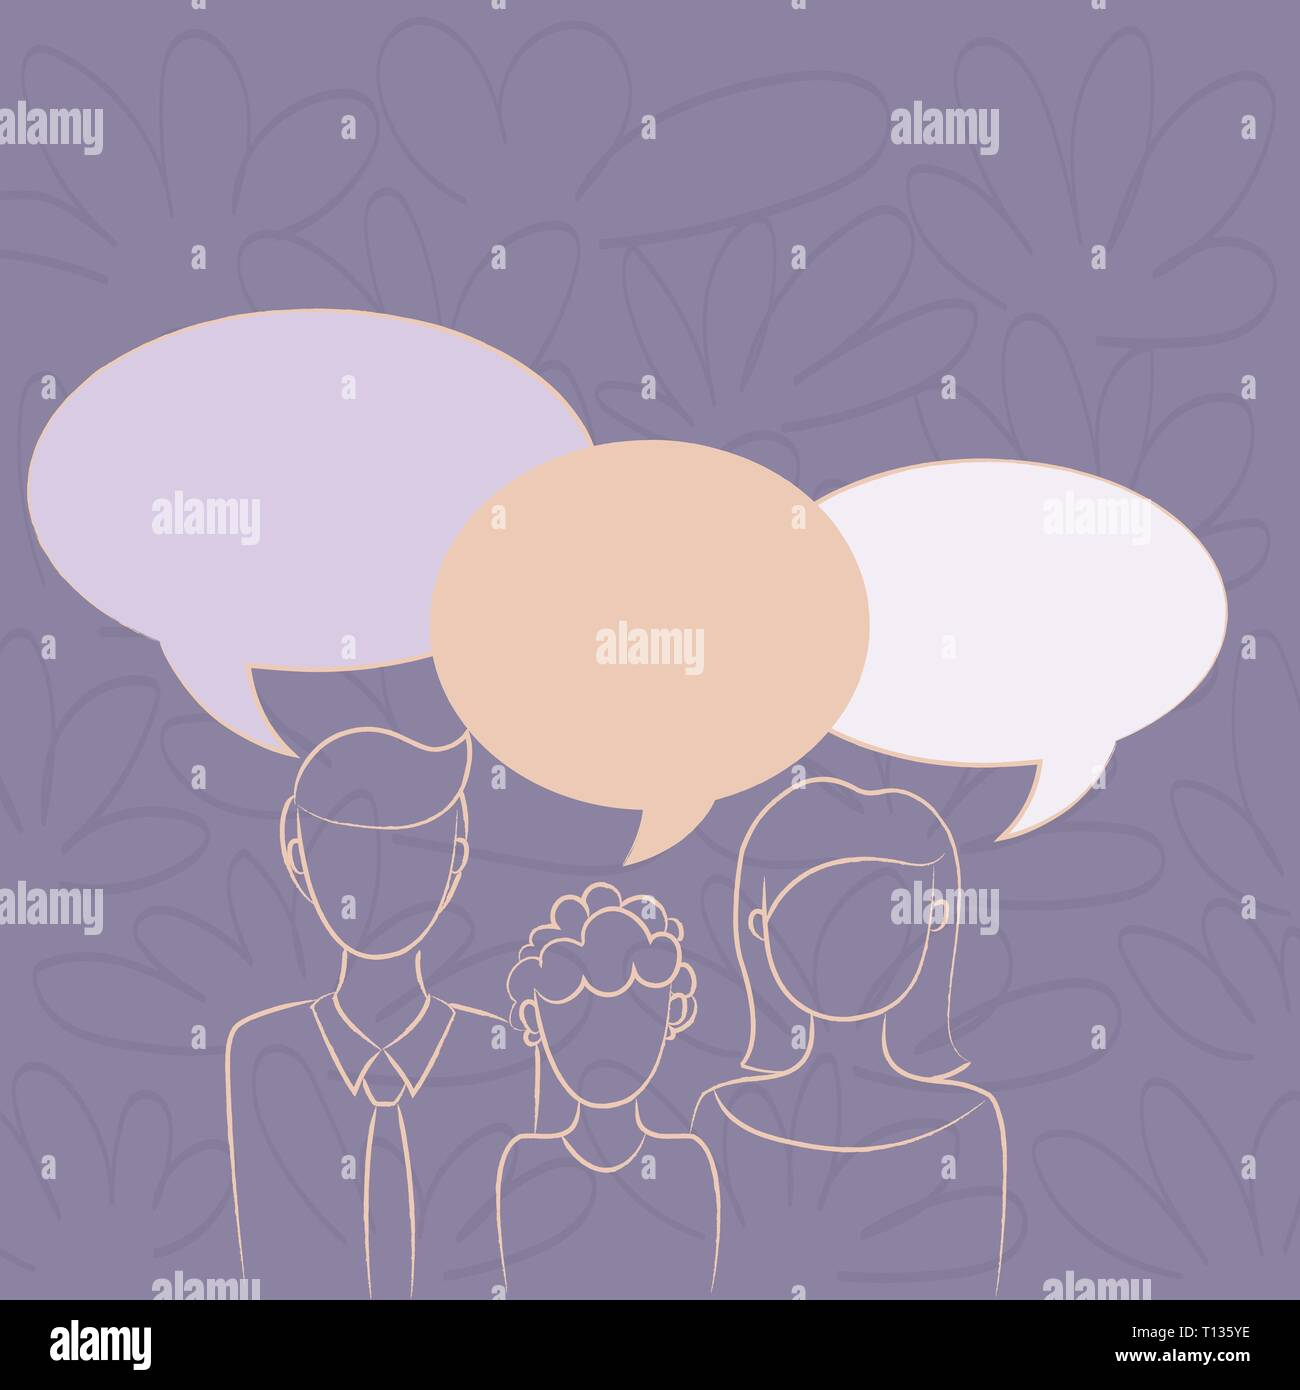 Family of One Child Between Father and Mother and Their Own Speech Bubble Design business Empty template isolated Minimalist graphic layout template f - Stock Vector